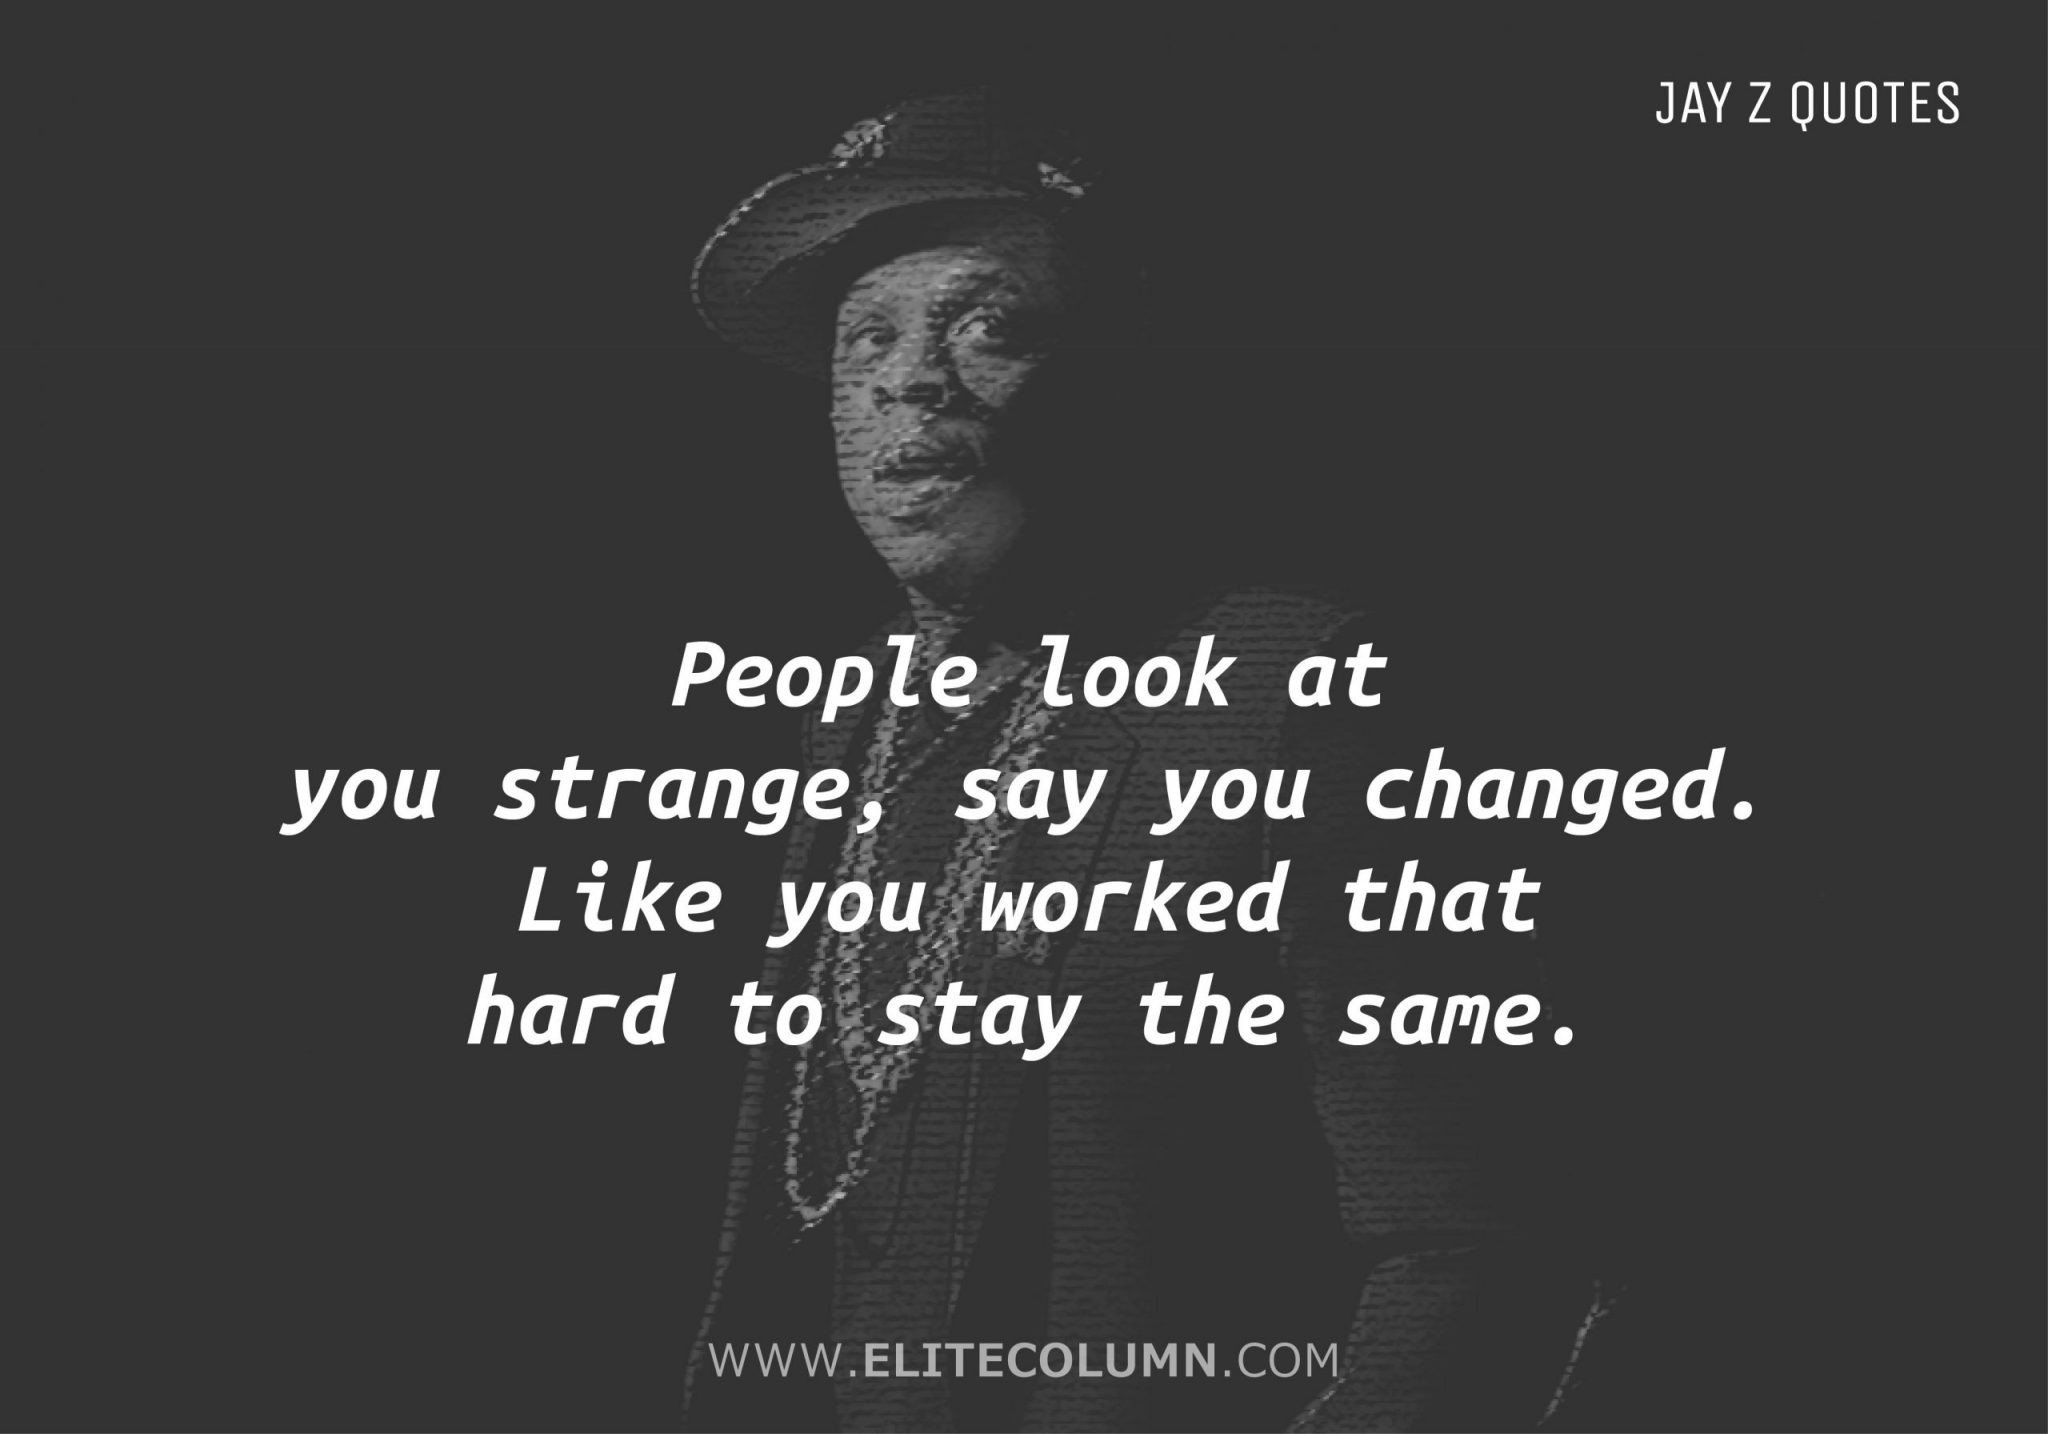 Jay Z Quotes (5)